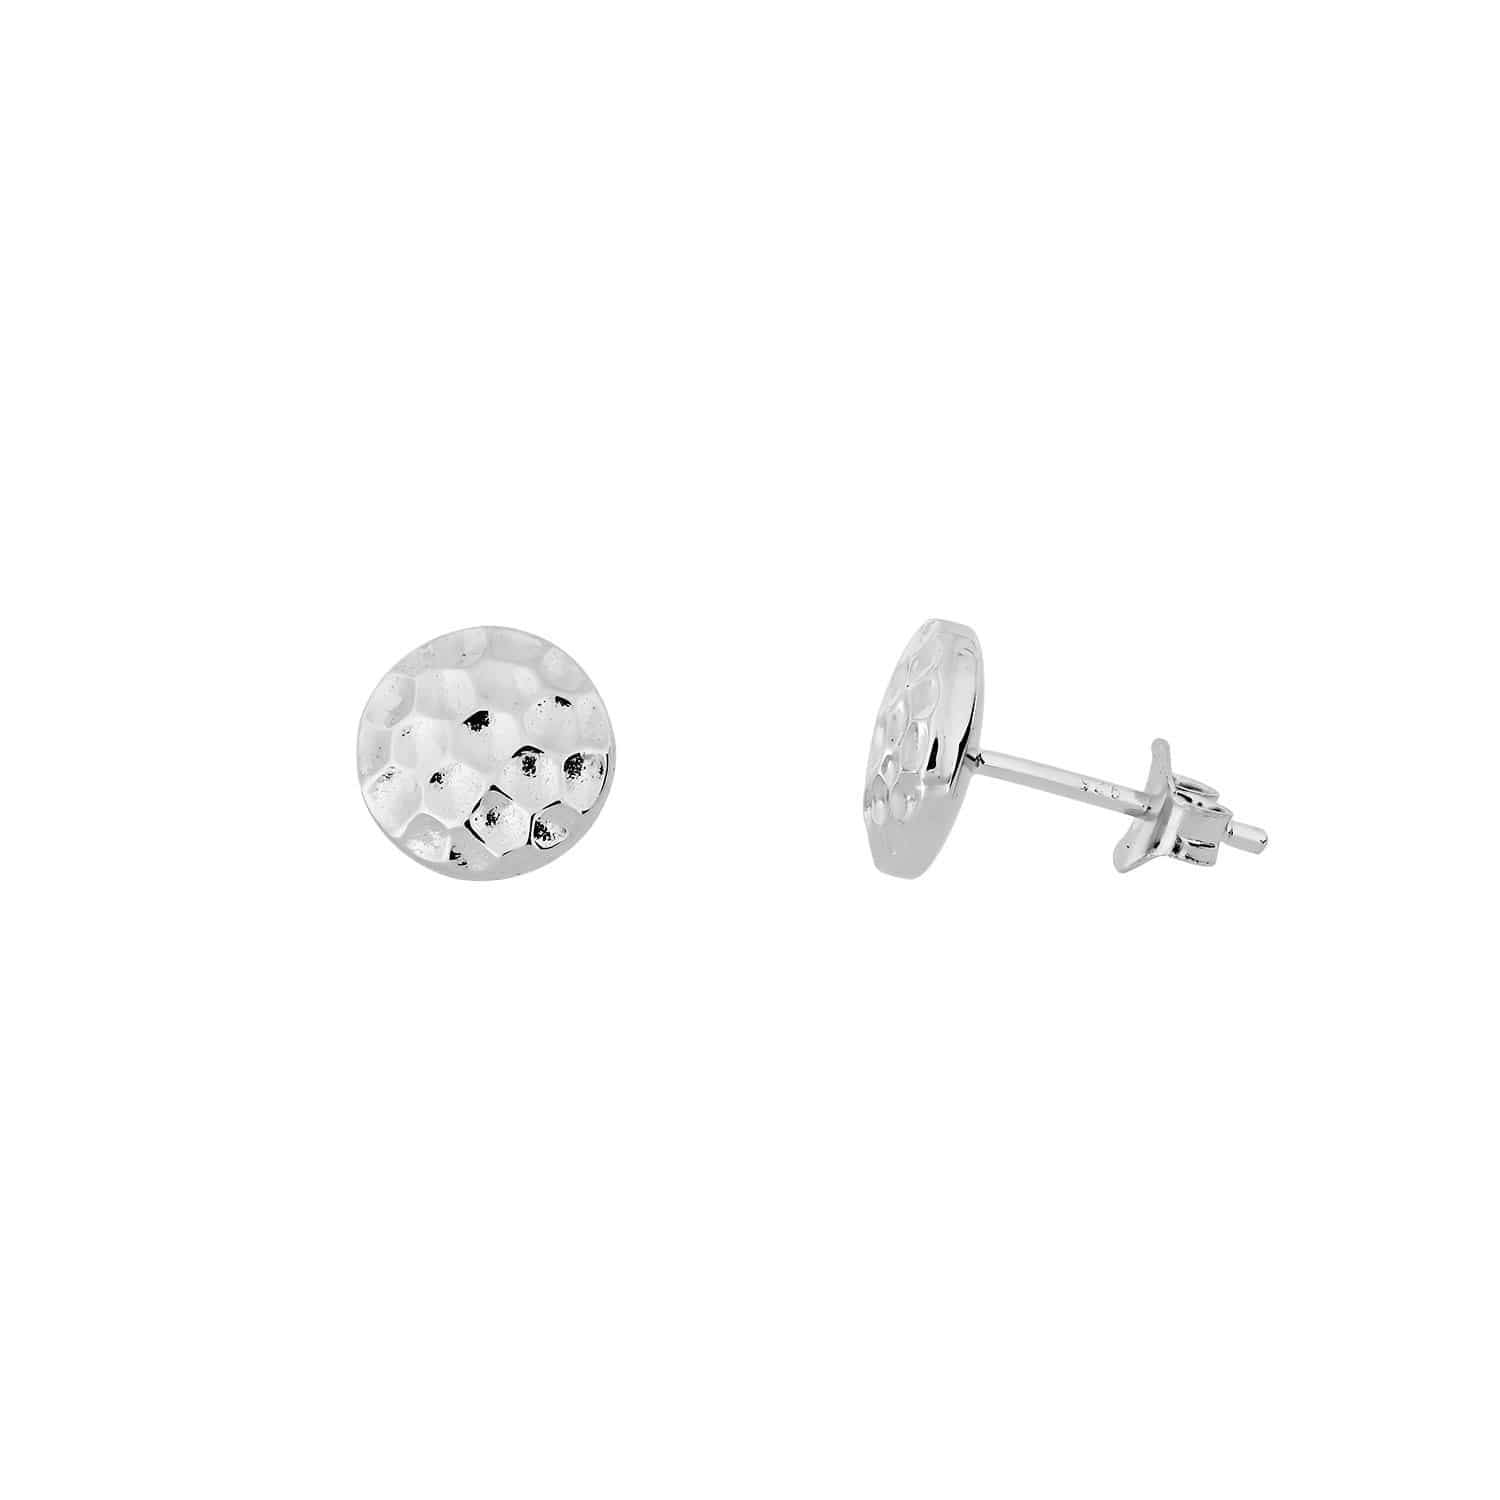 9mm / Silver Planished Double Curved Button Stud Earrings